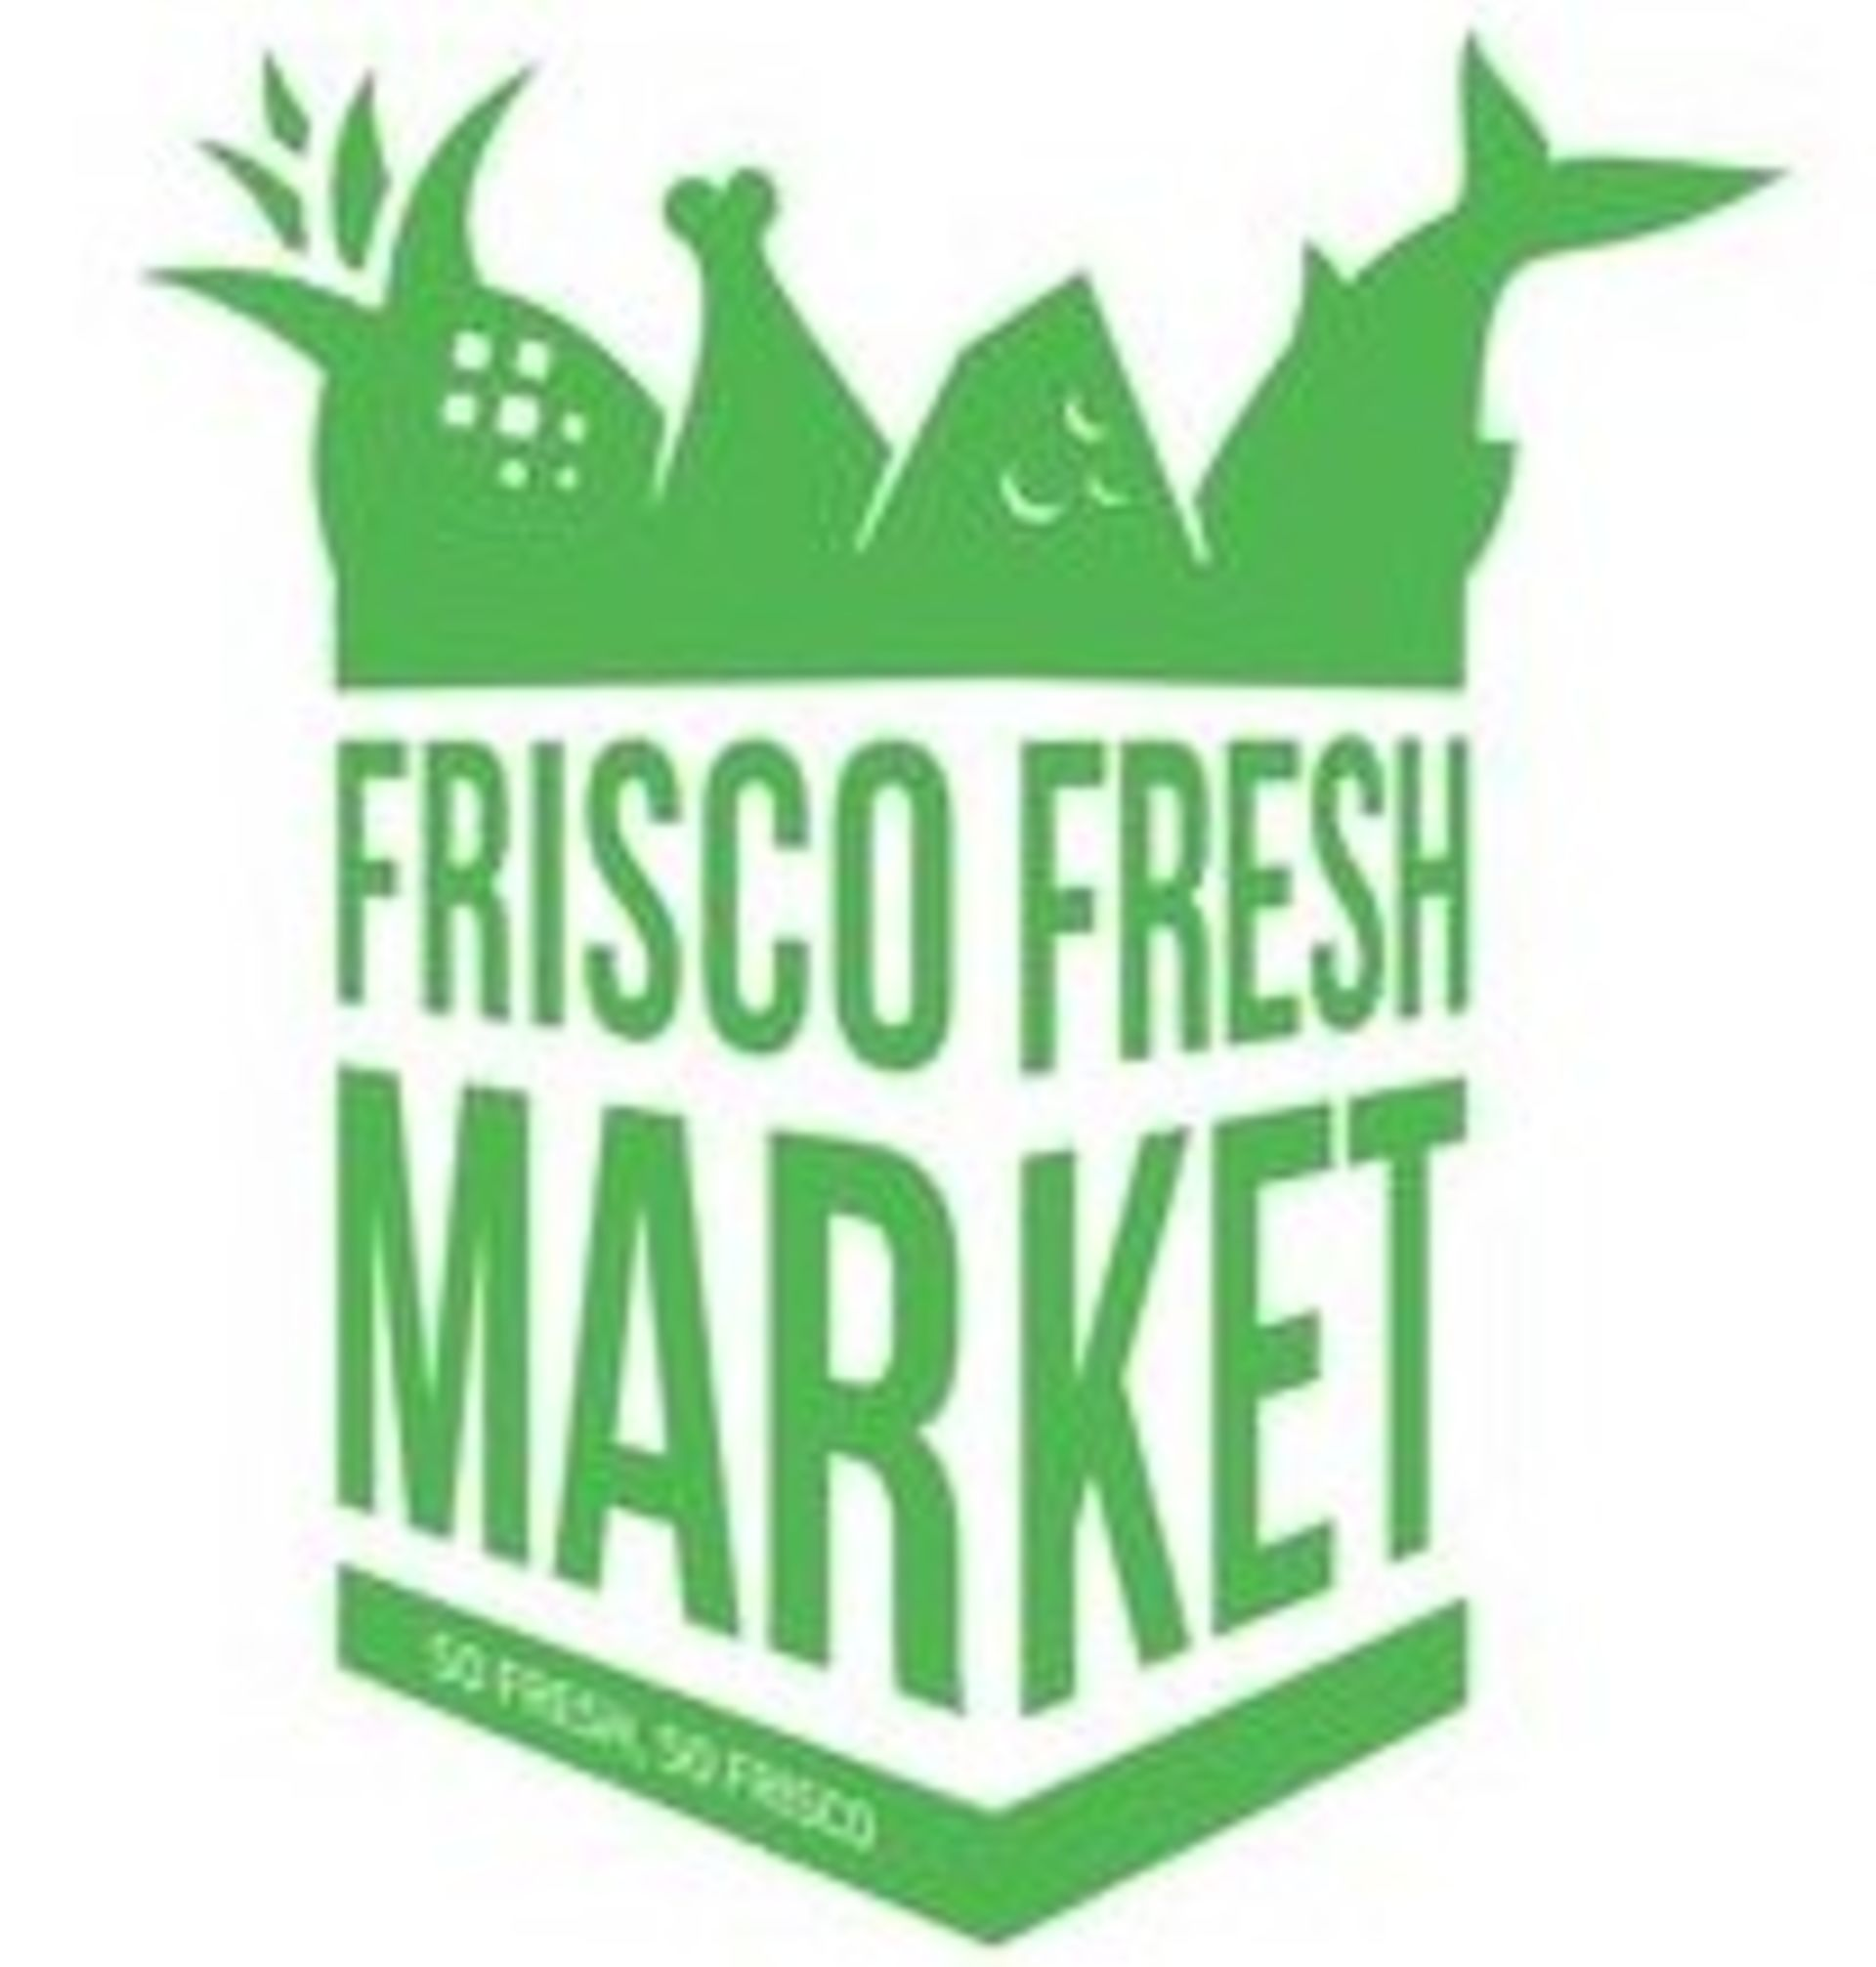 Frisco Fresh Market Grand Opening